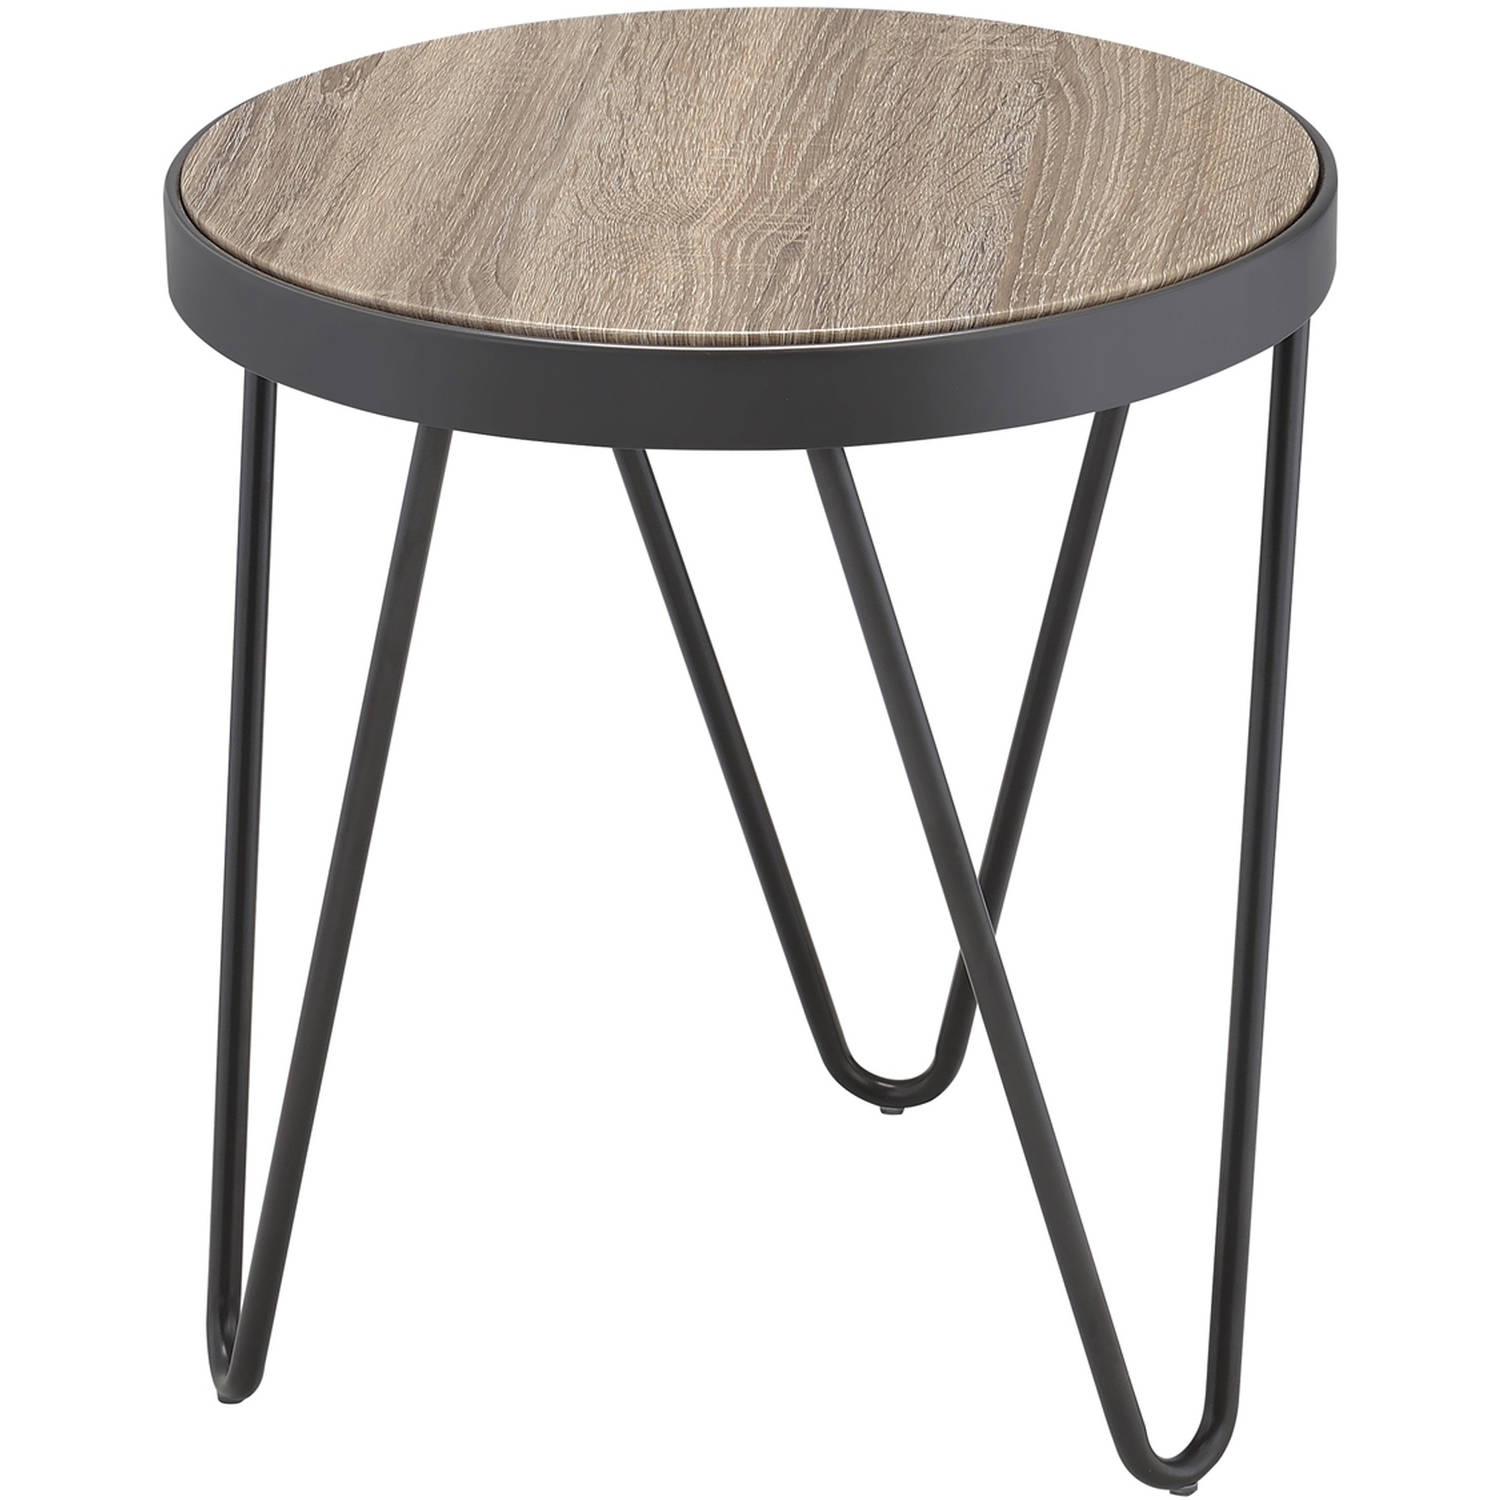 ACME Bage End Table, Weathered Gray Oak by Acme Furniture